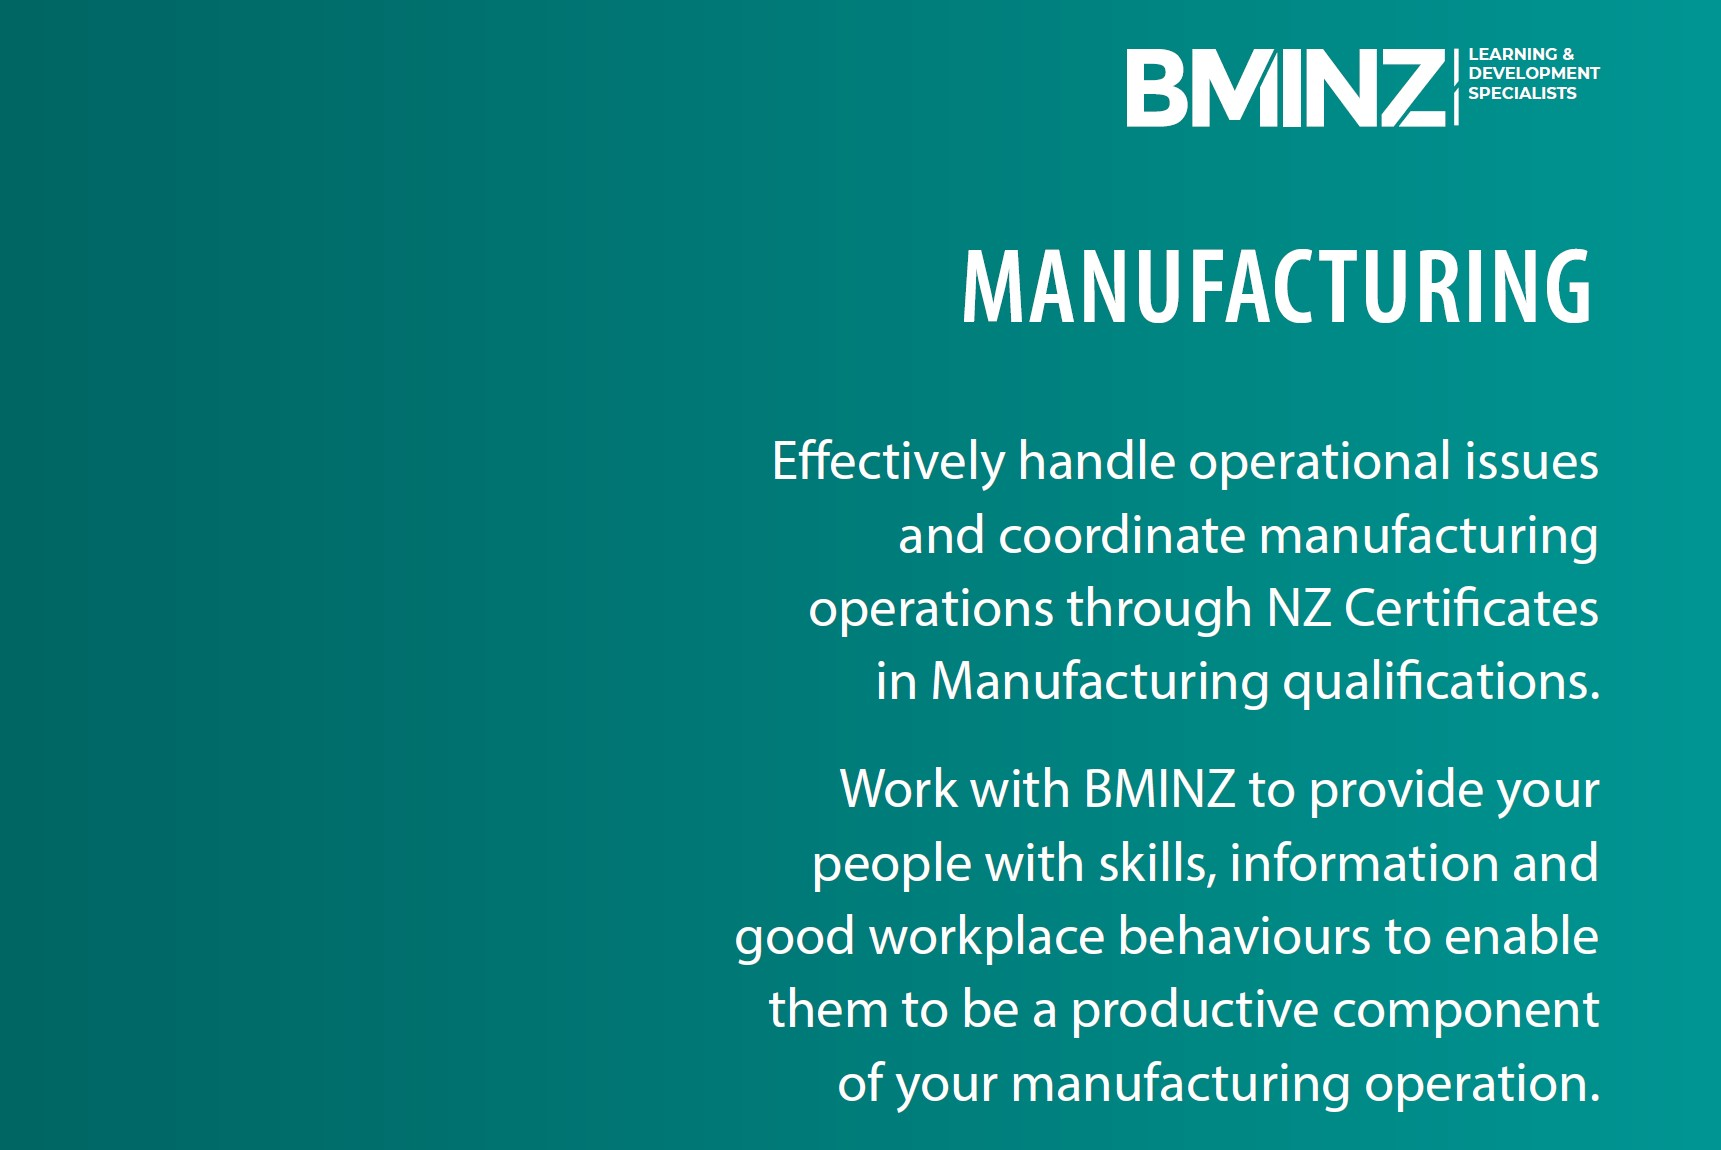 MANUFACTURING: Effectively handle operational issues and coordinate manufacturing operations through NZ Certificates in Manufacturing qualifications. Work with BMINZ to provide your people with skills, information and good workplace behaviours to enable them to be a productive component of your manufacturing operation.